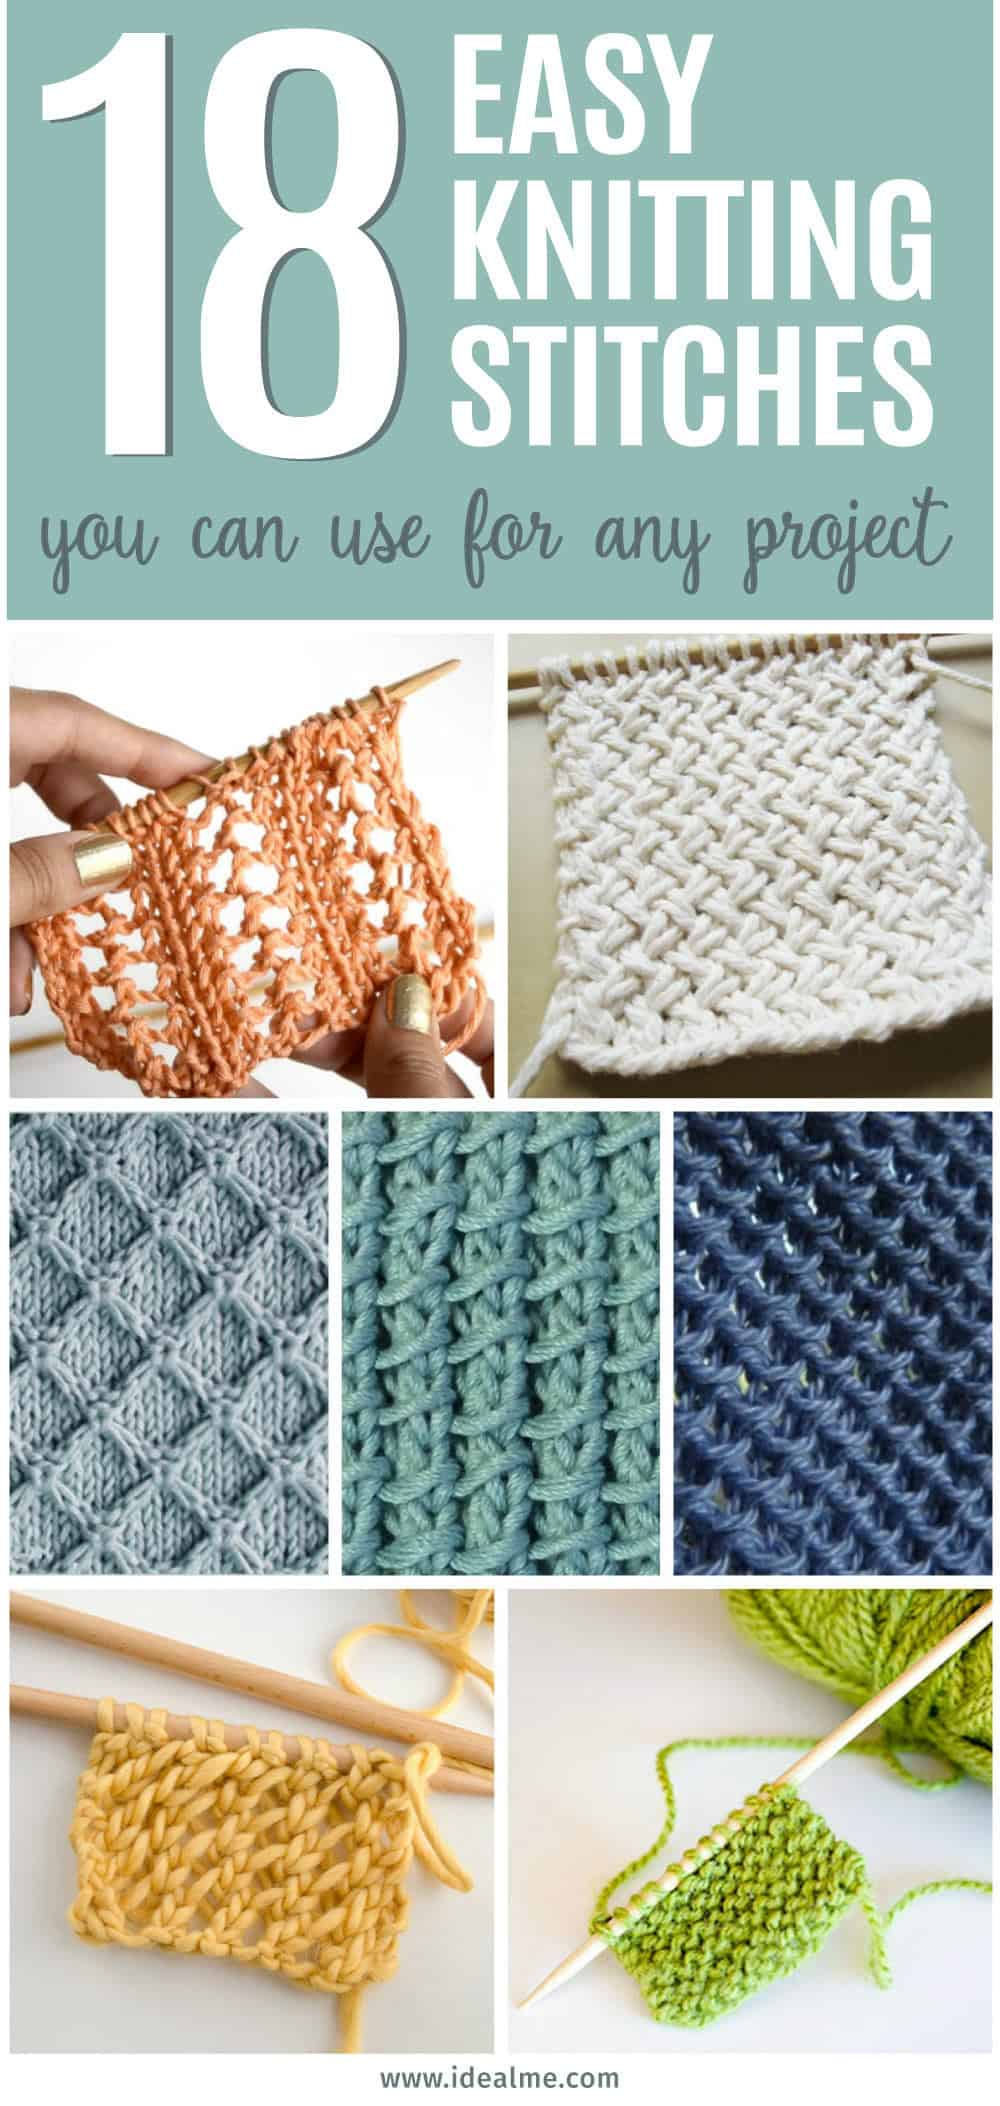 List All Knitting Stitches : 18 Easy Knitting Stitches You Can Use for Any Project - Ideal Me